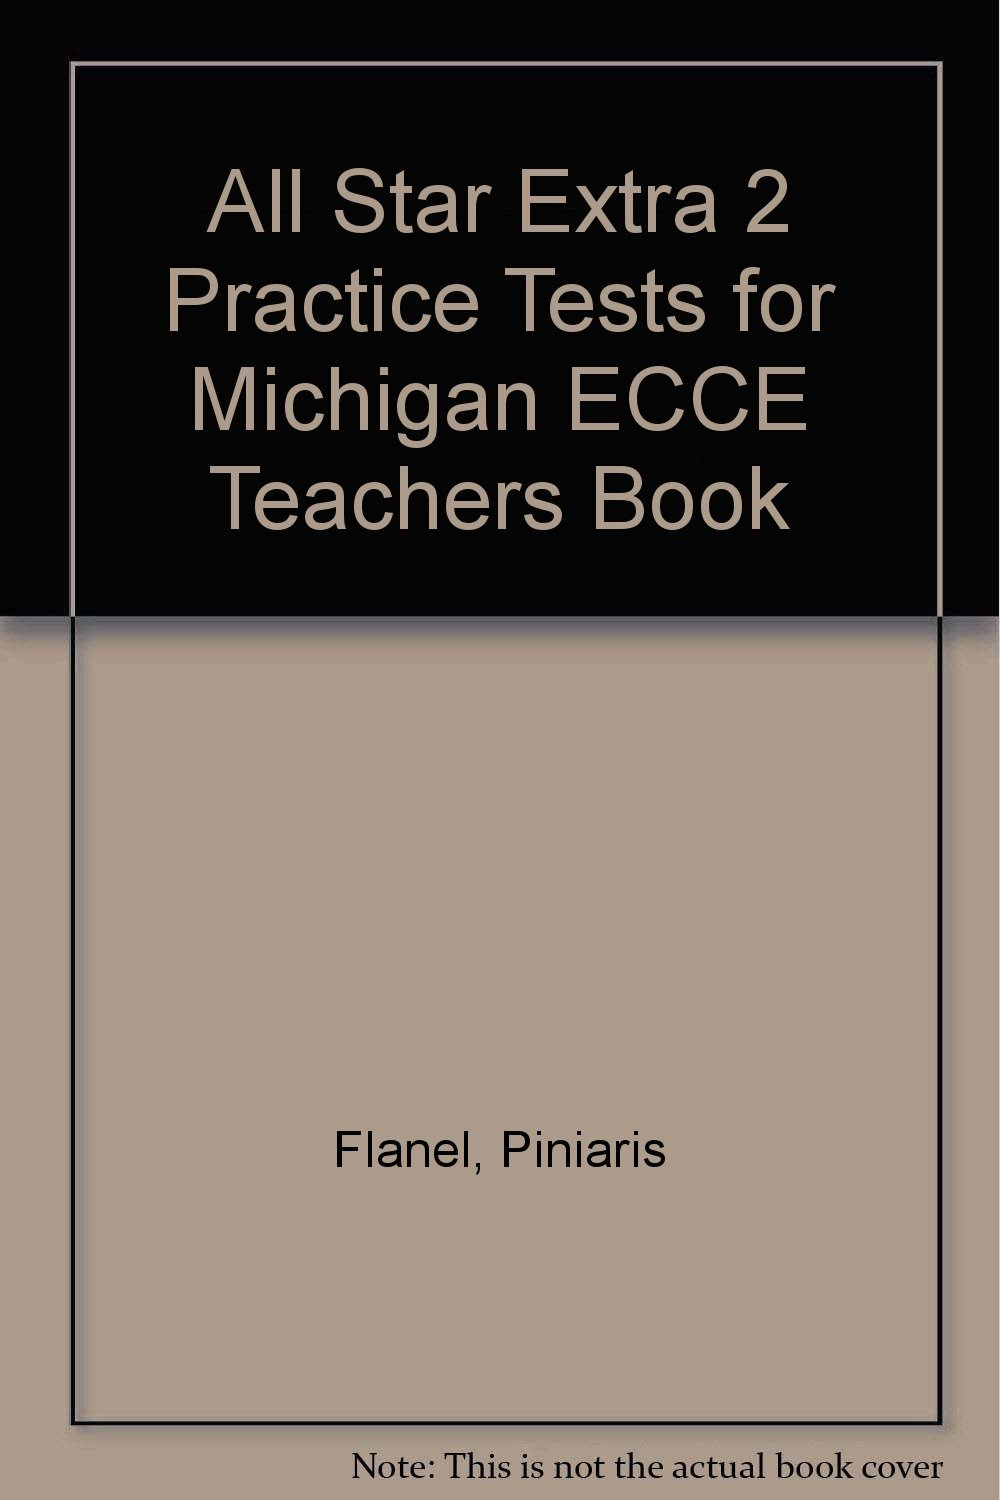 Download ALL STAR EXTRA VOL 2 PRACTICETESTS FOR MICHIGAN ECCE TB V2 PDF